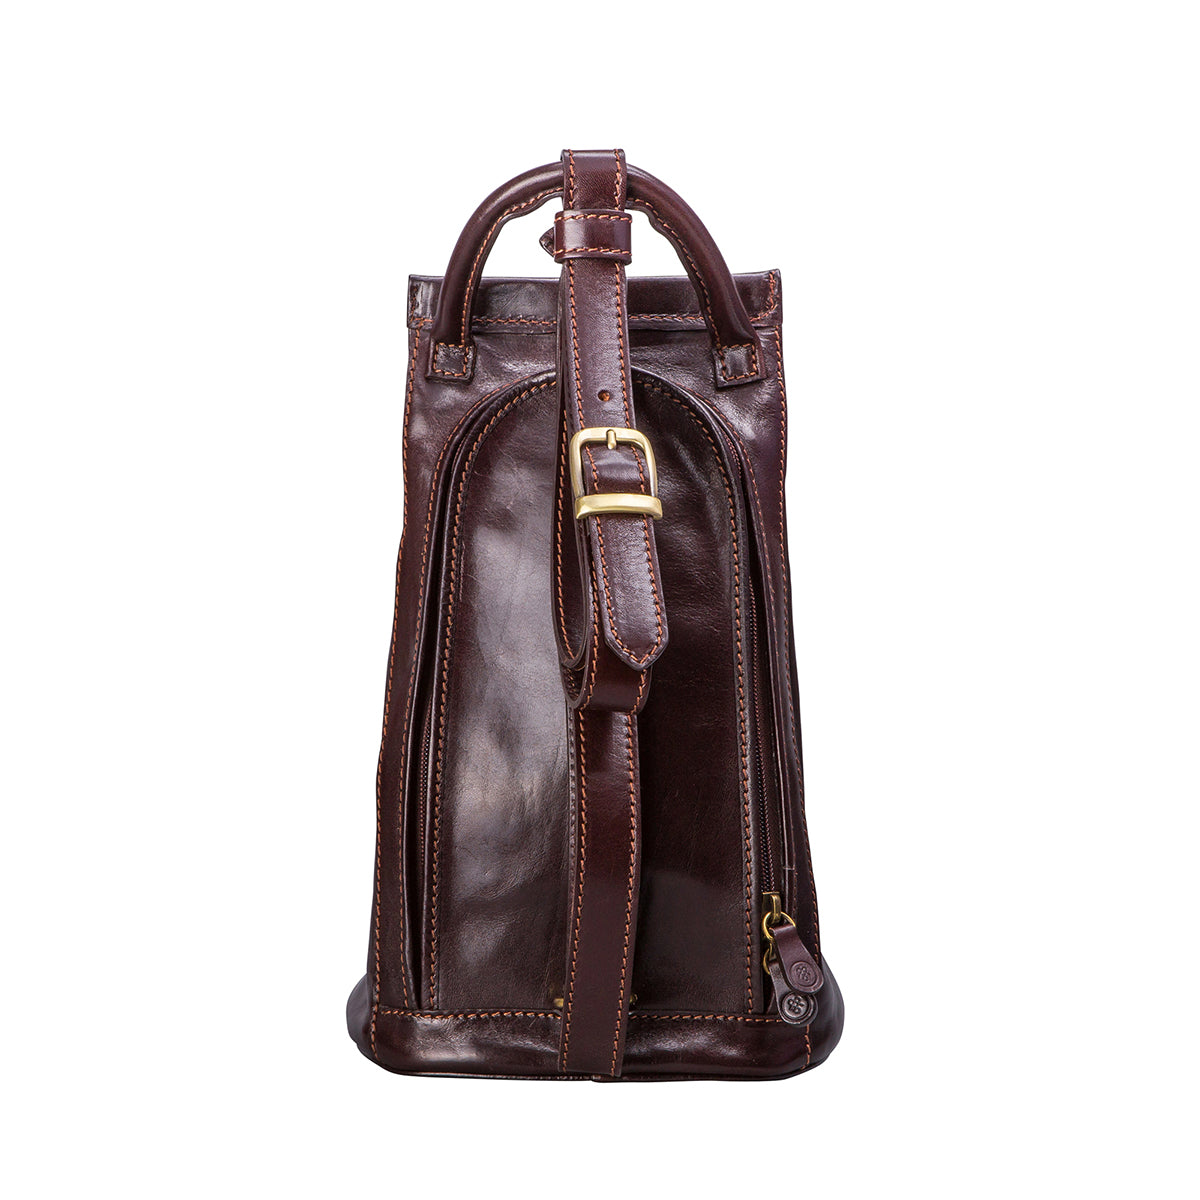 Image 4 of the 'Carli' Dark Chocolate Veg-Tanned Leather Backpack